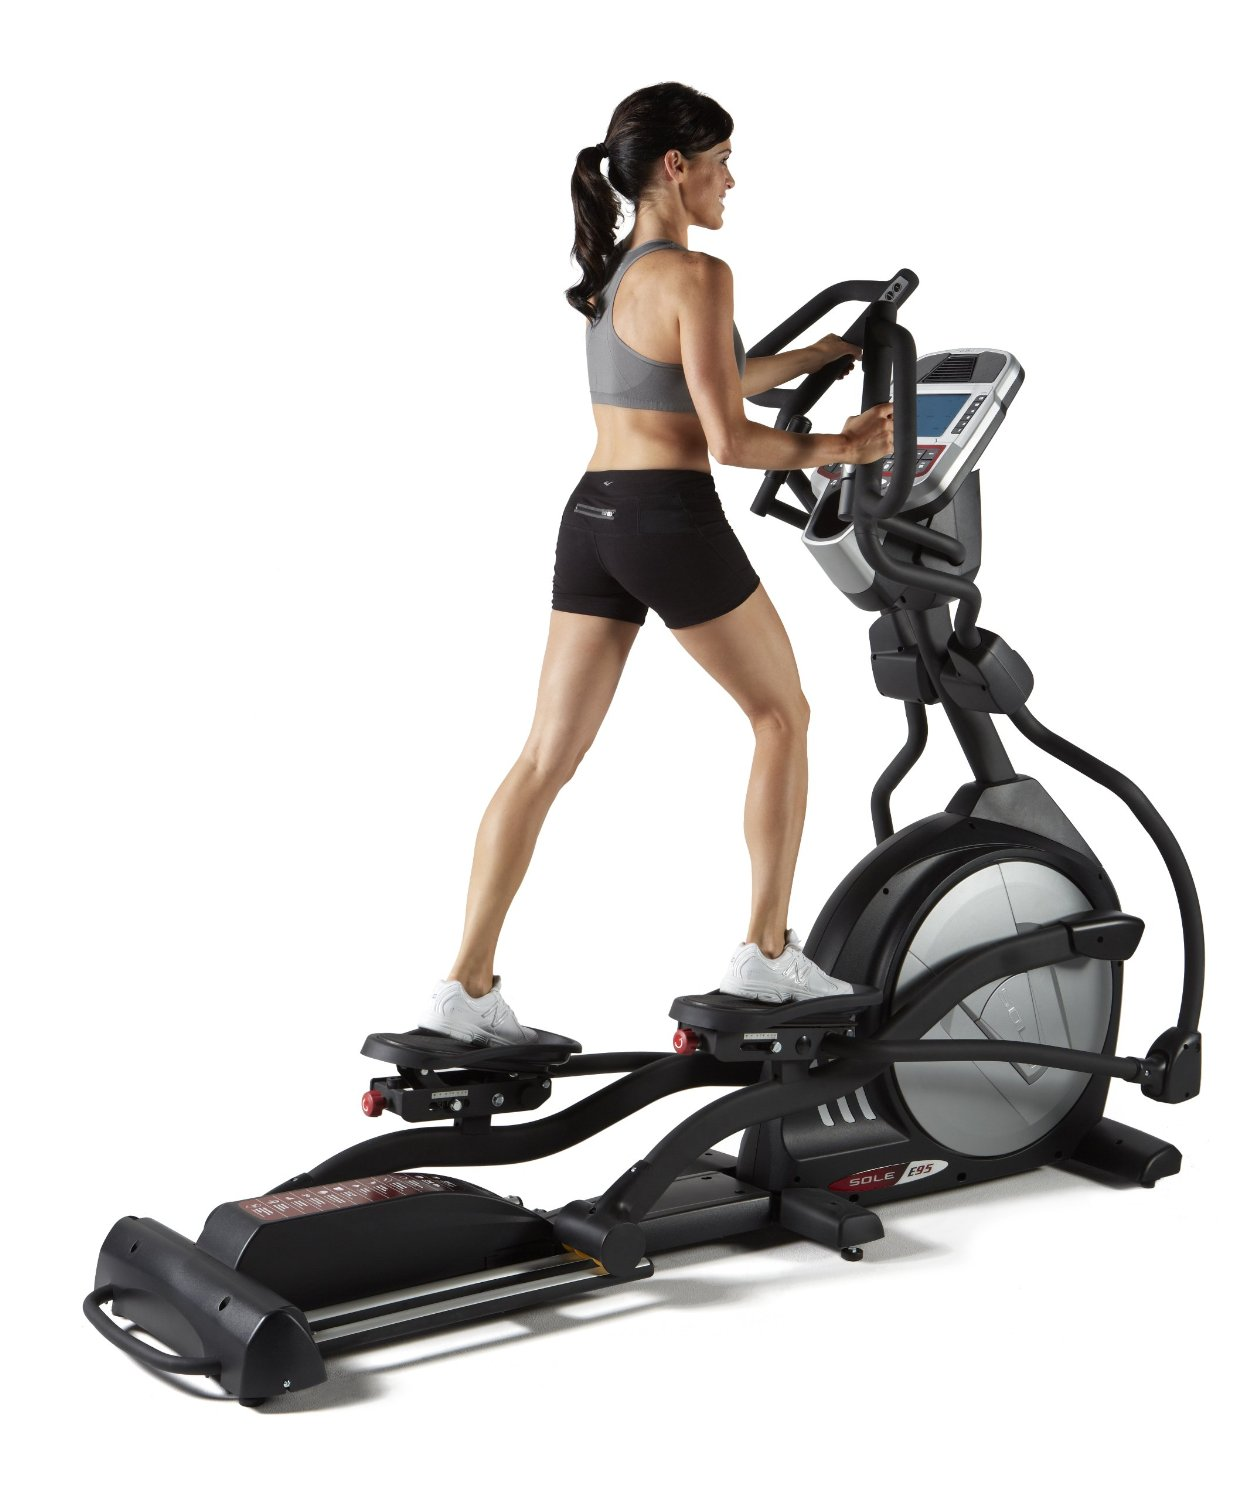 Top 10 Best Elliptical Machines of 2017